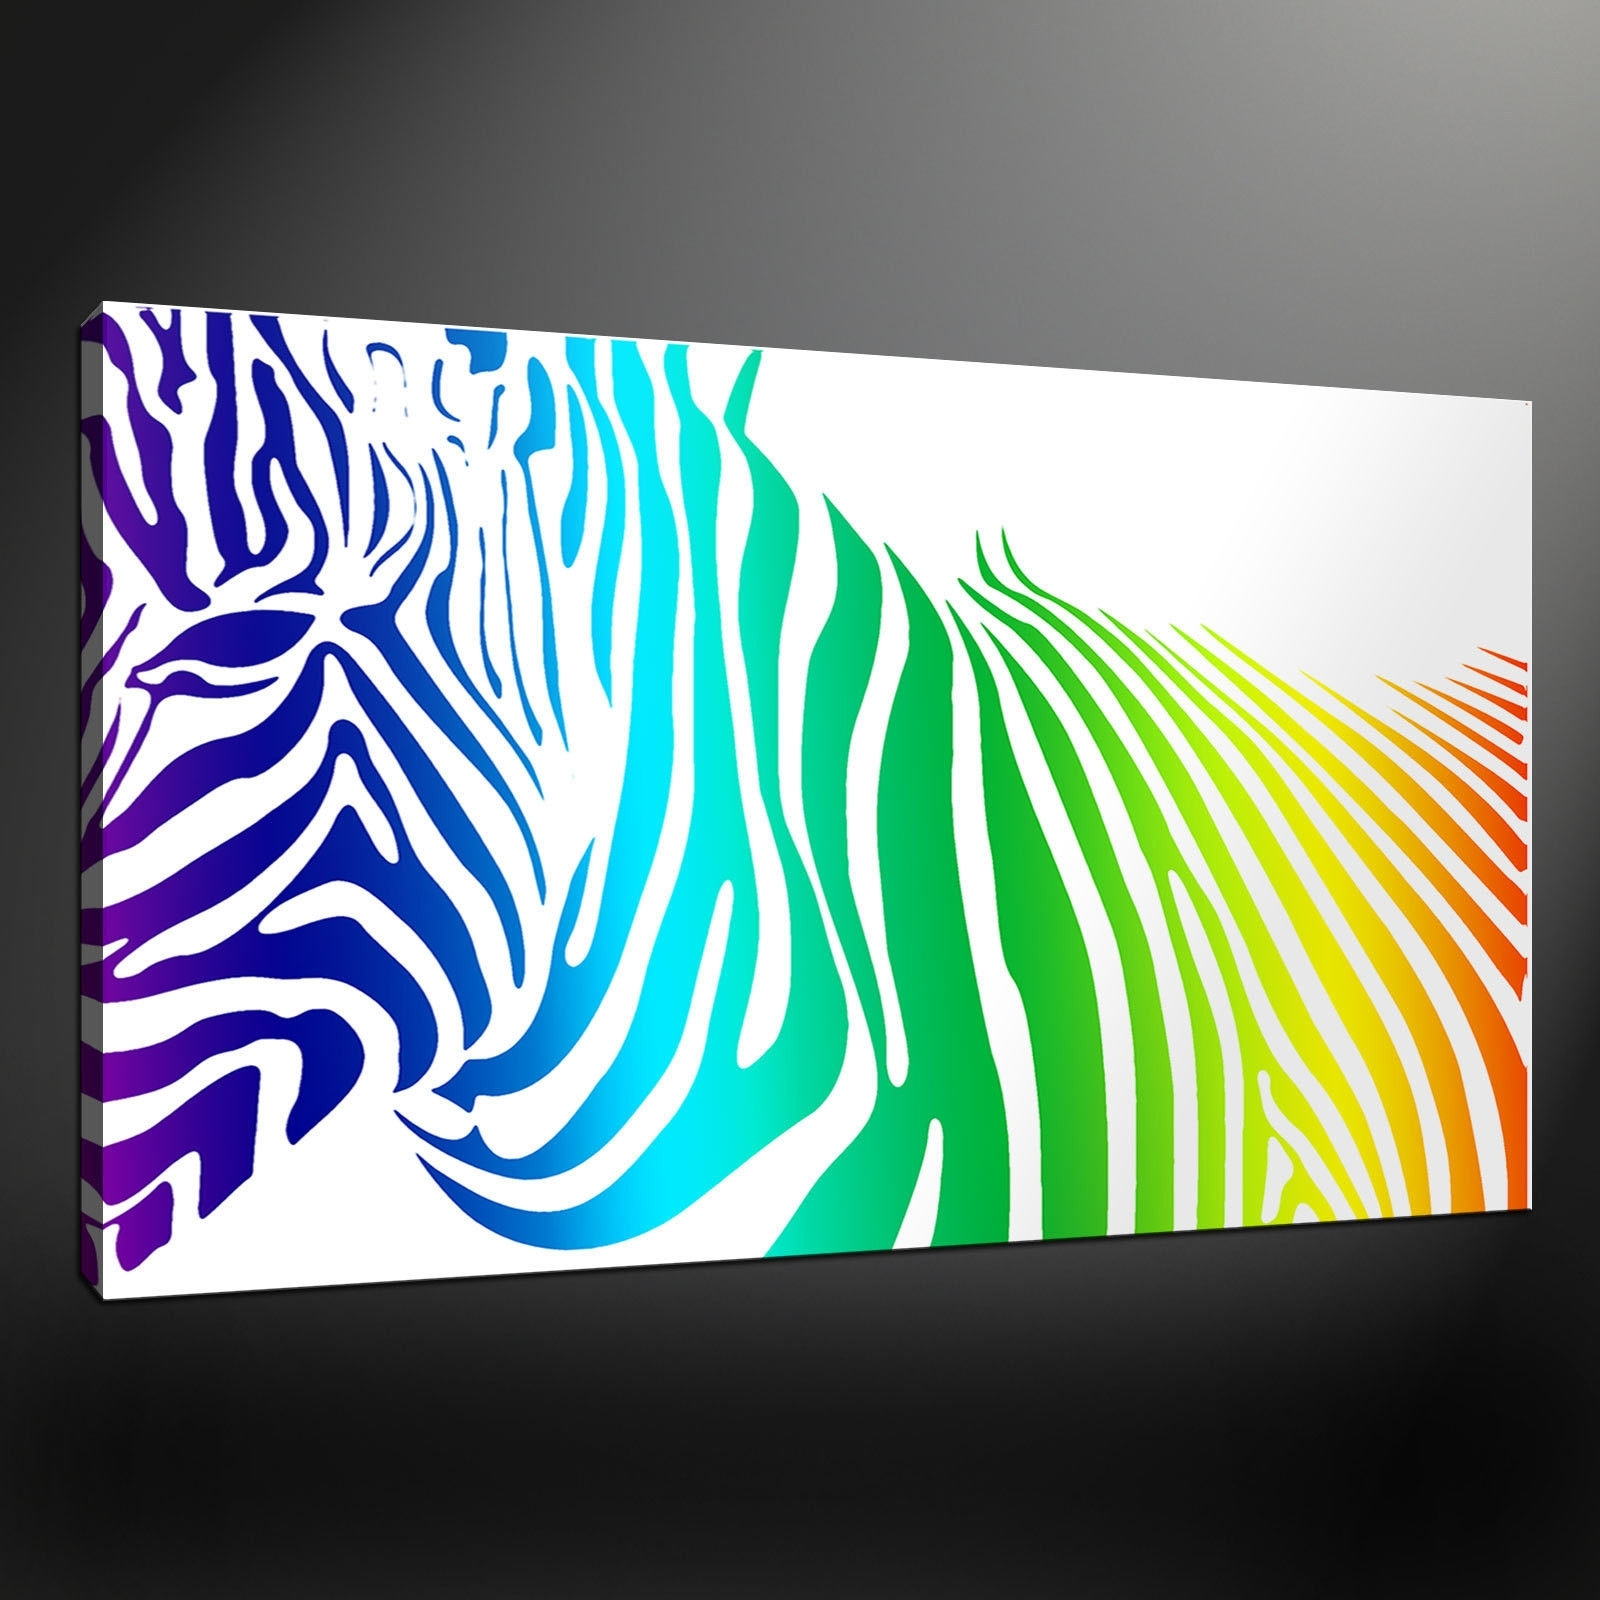 Rectangular Canvas Wall Art For Trendy Wall Art Ideas Design : Variery Prints Zebra Canvas Wall Art (View 14 of 15)